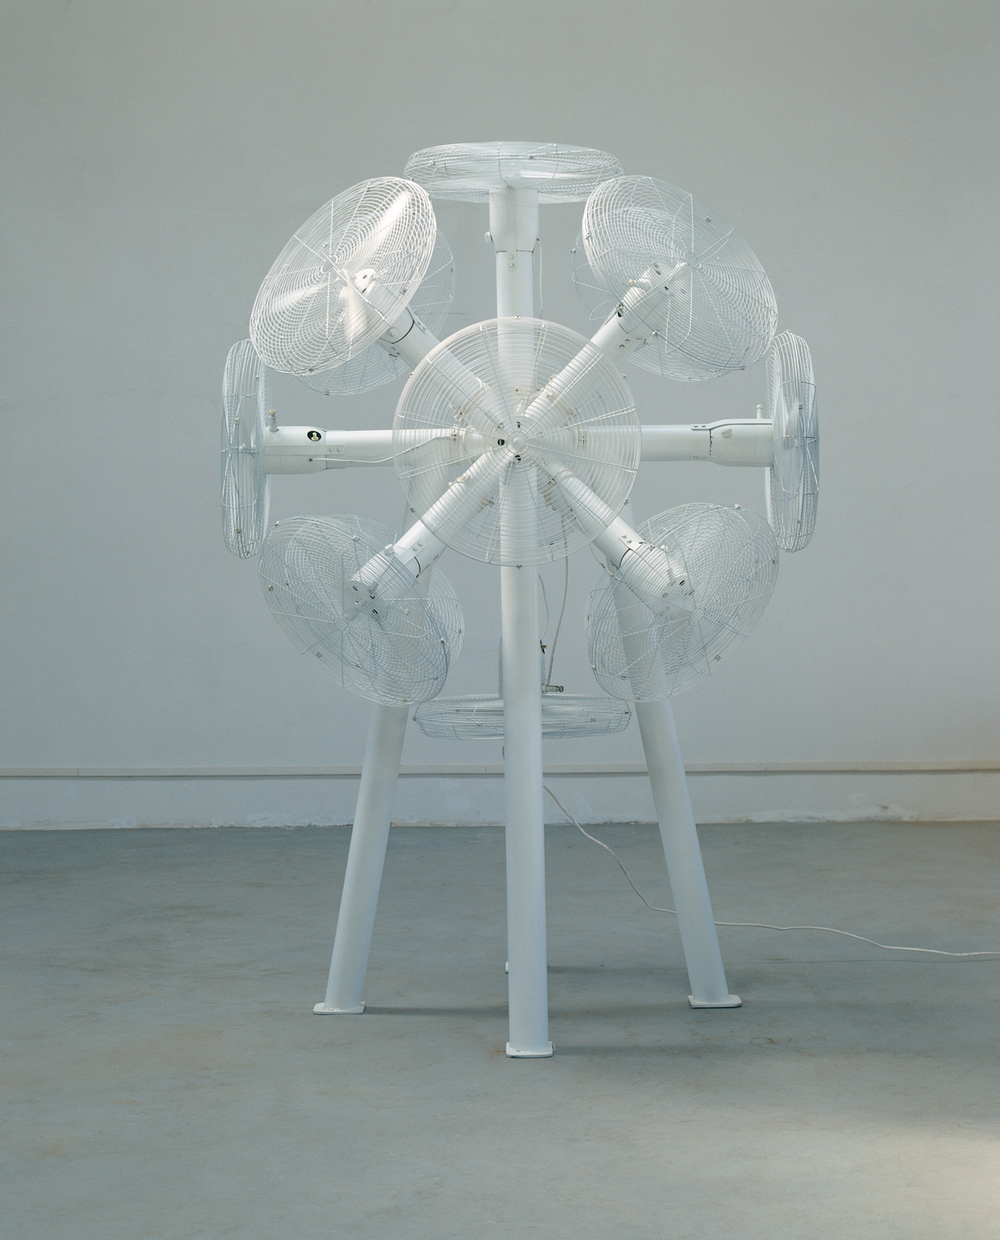 Gao Weigang 高伟刚, Buzz No.1 嗡嗡嗡一号, 2008, Electric installation and steel 电动装置、钢, 270 x 190 x 190 cm